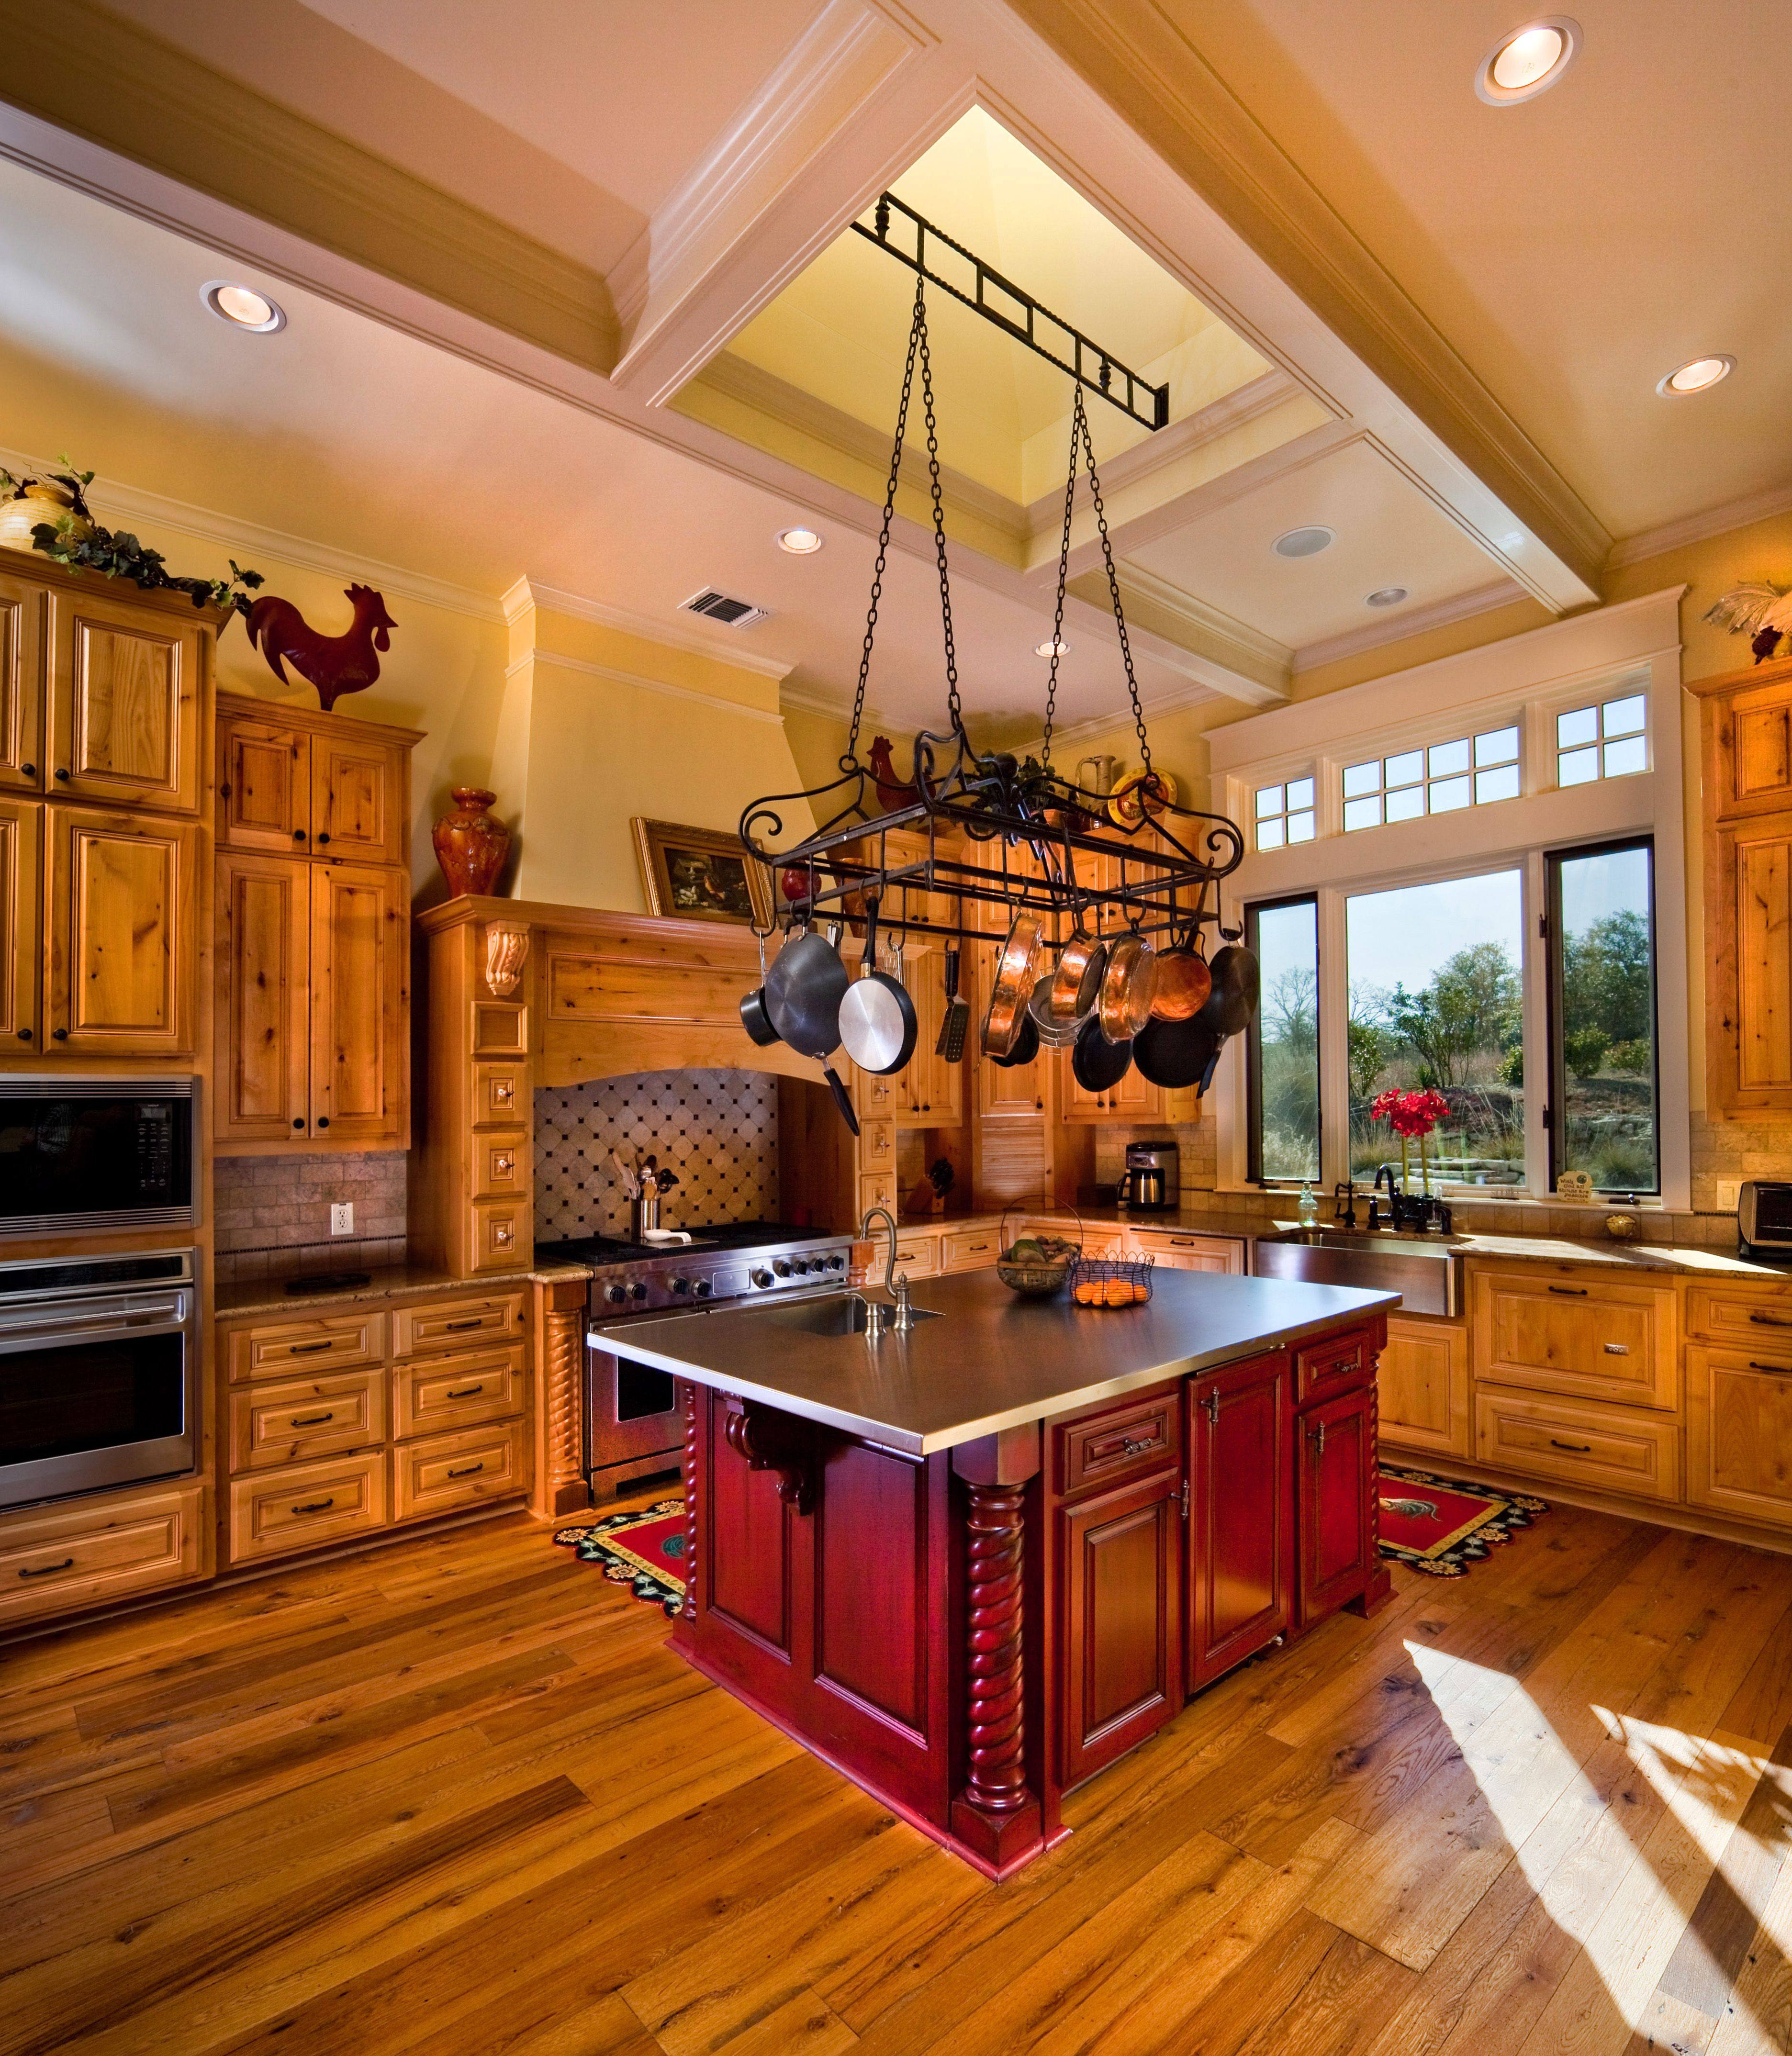 Knotted Oak Kitchen Cabinets: Knotty Alder Cabinets And Reclaimed Oak Flooring Are